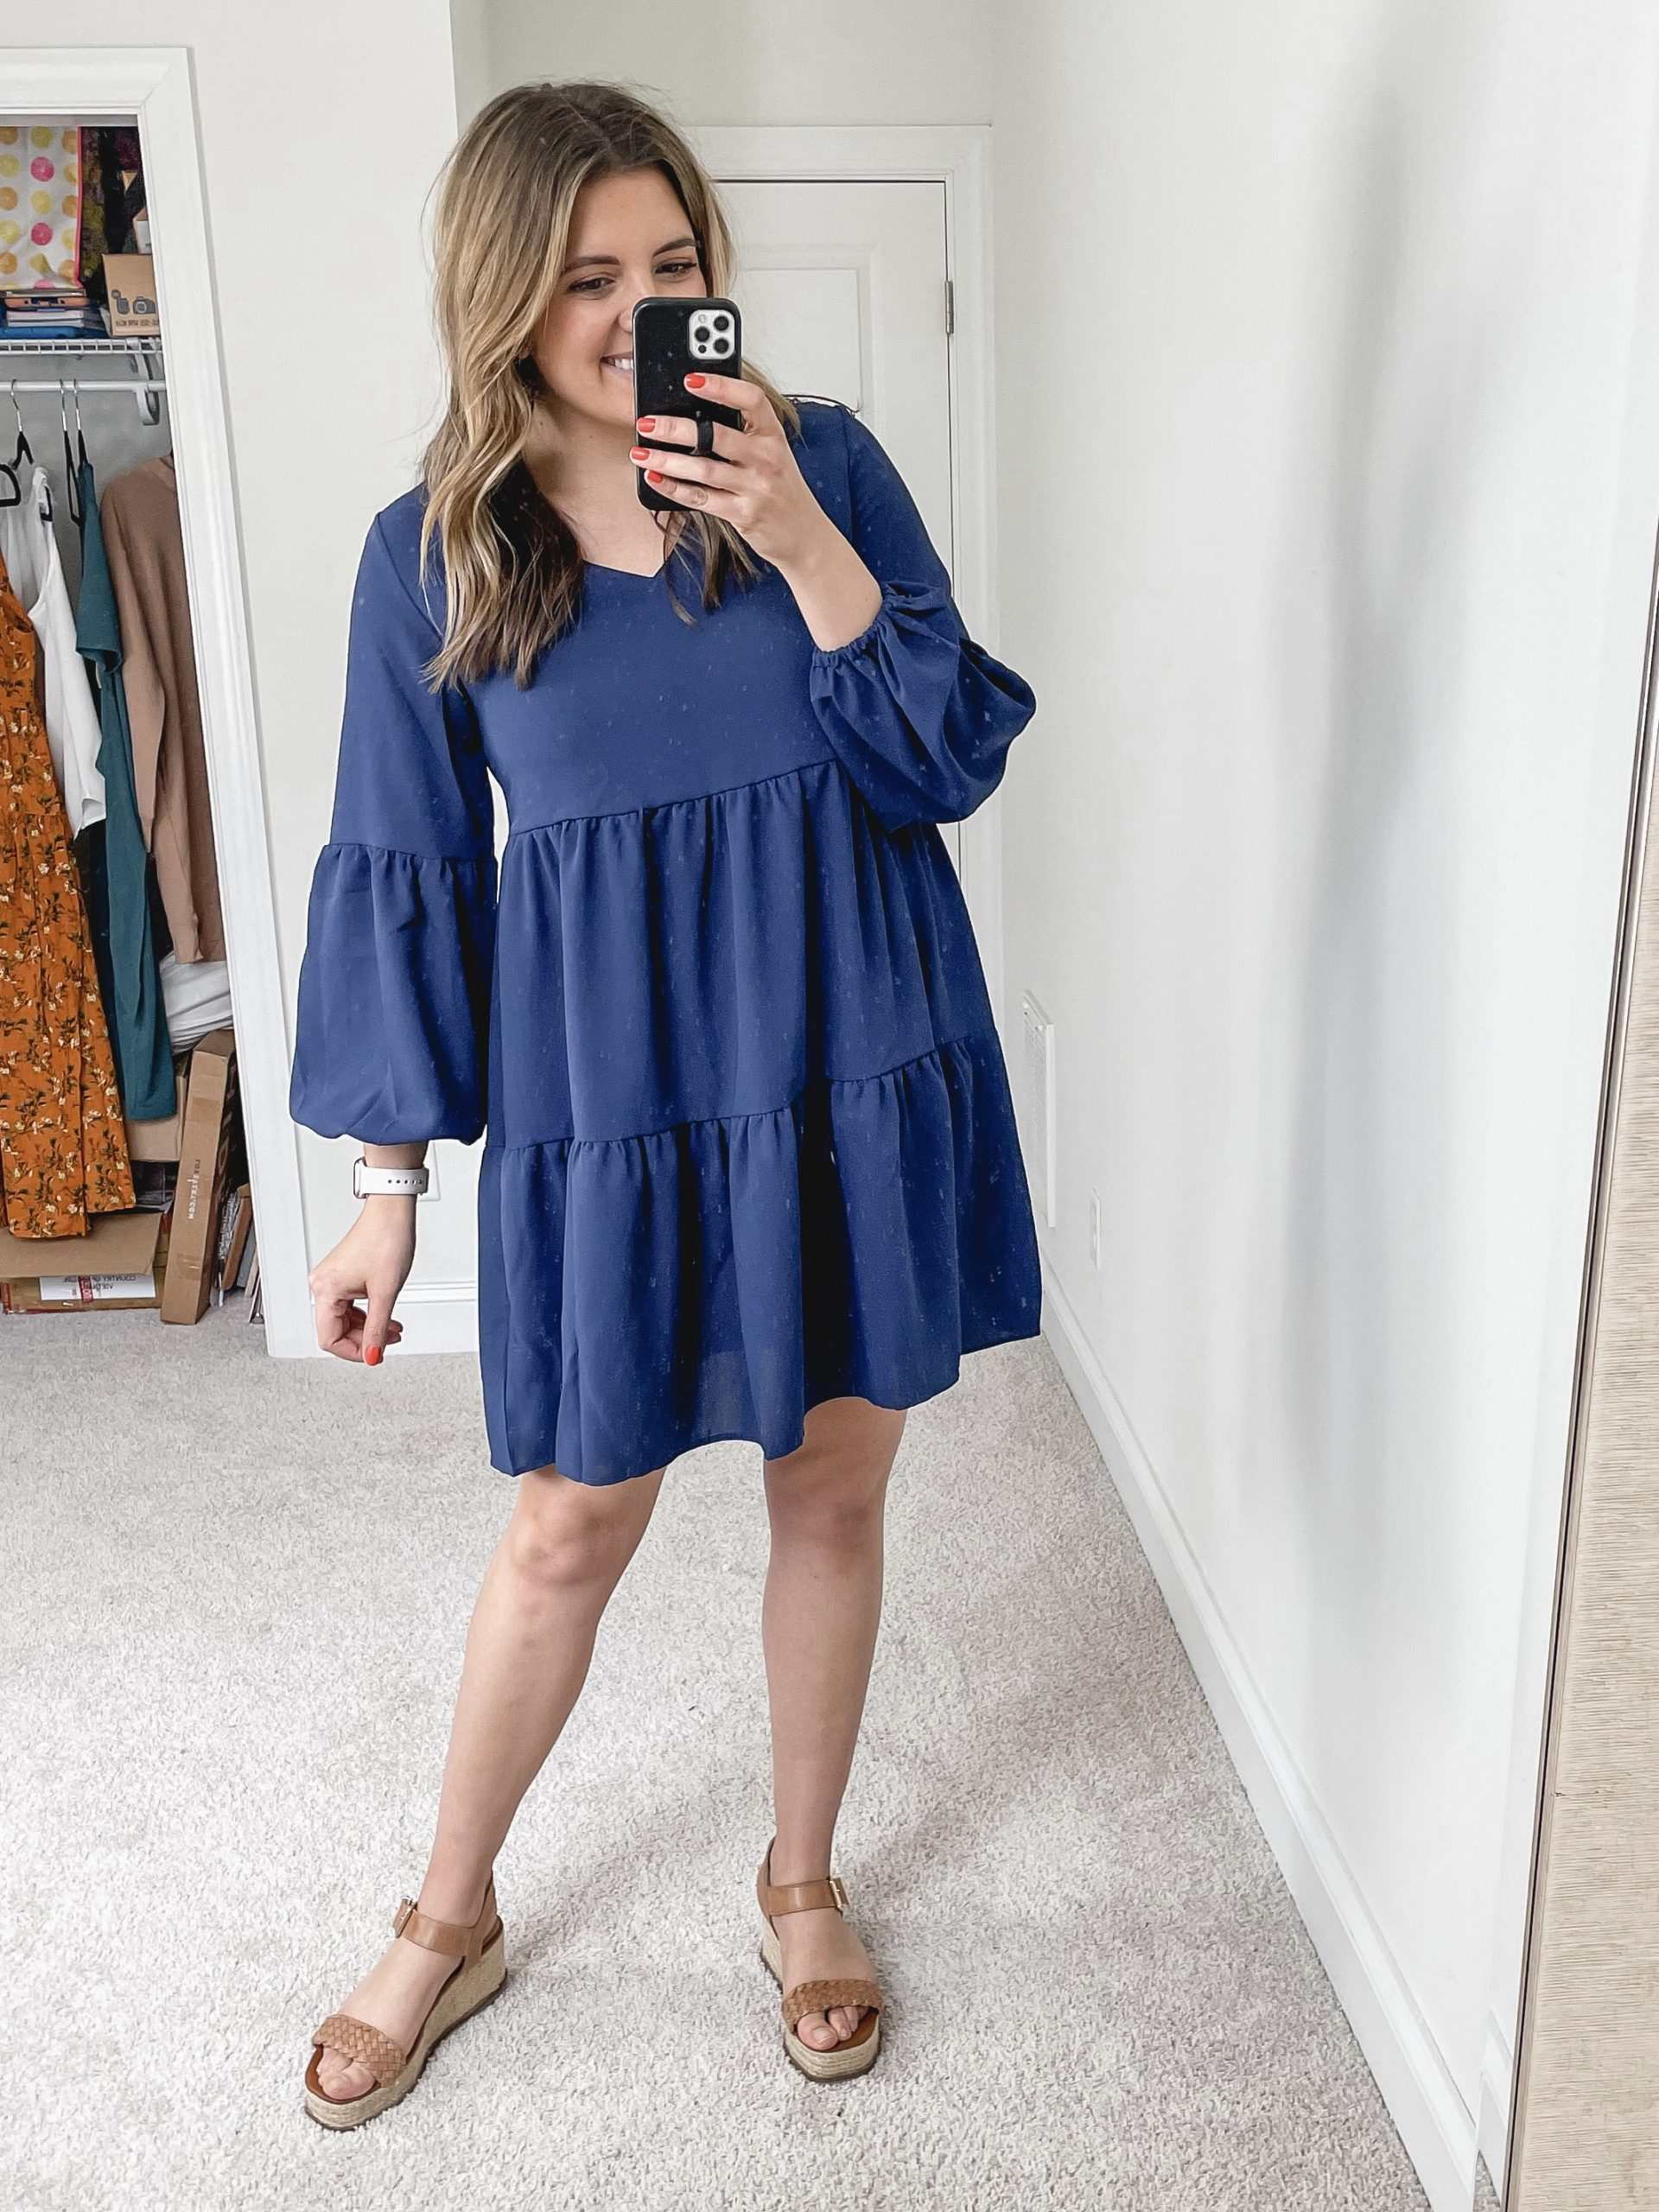 Virginia blogger, Lauren Dix, shares ten new spring Amazon fashion finds.